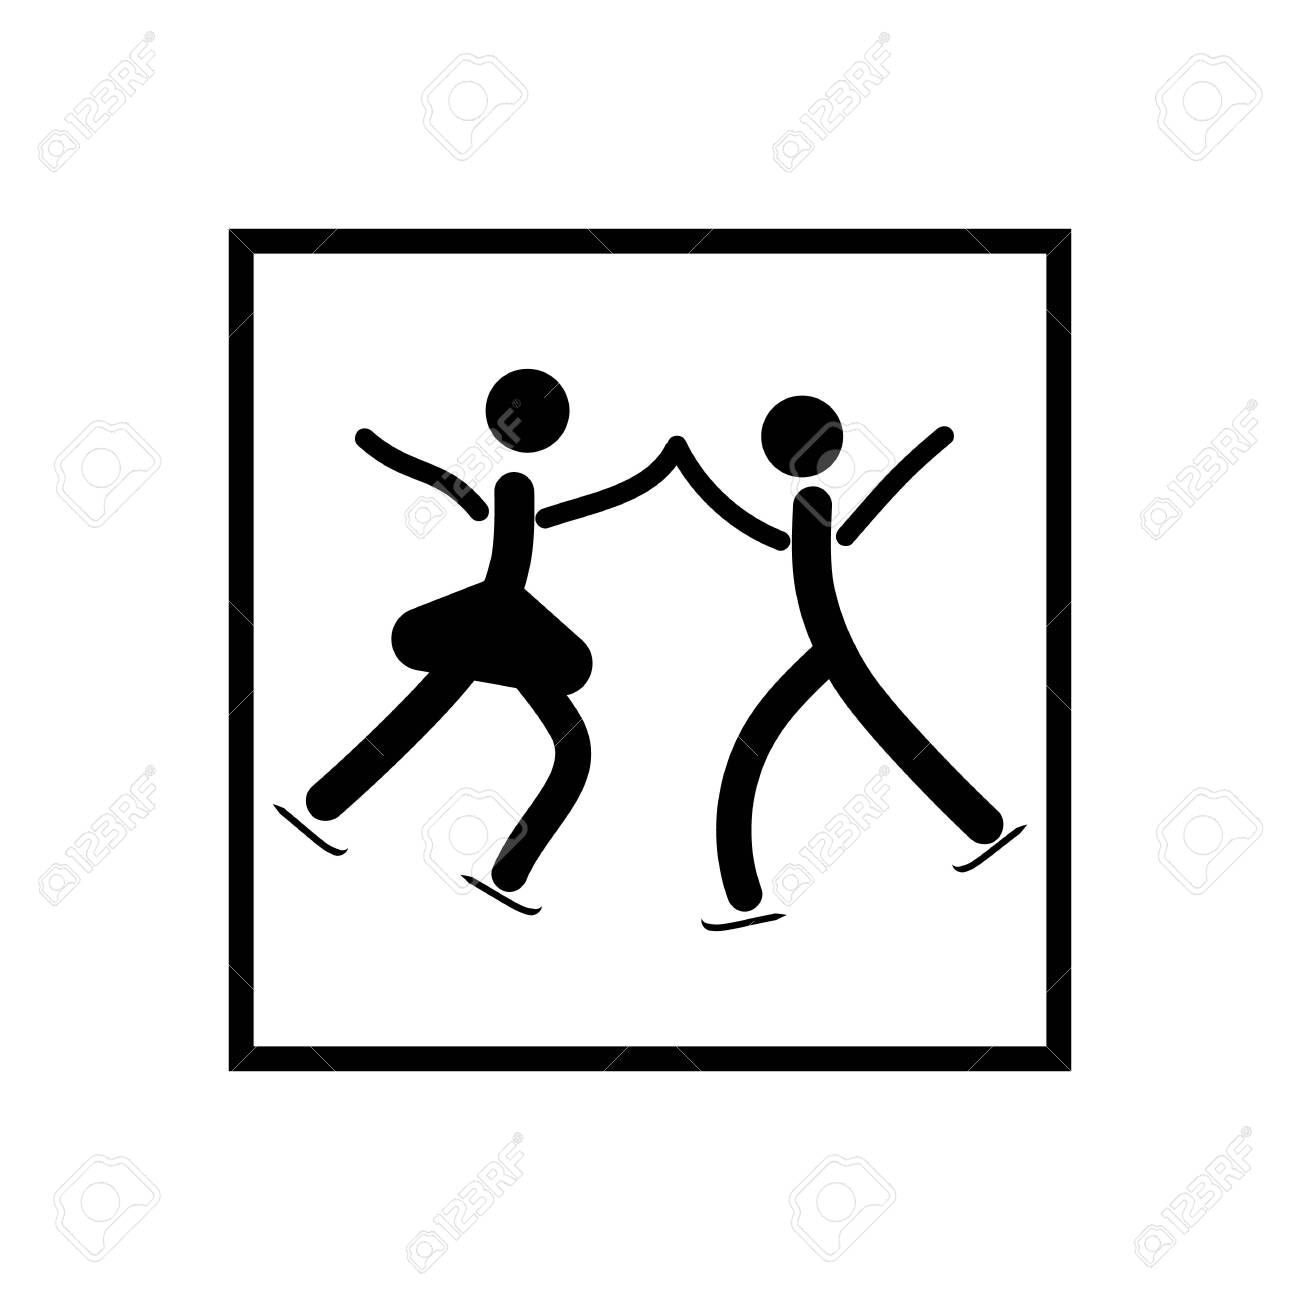 Sports. Pair figure skating icon. Two silhouette skate. icon sports dance on ice. - 150070352